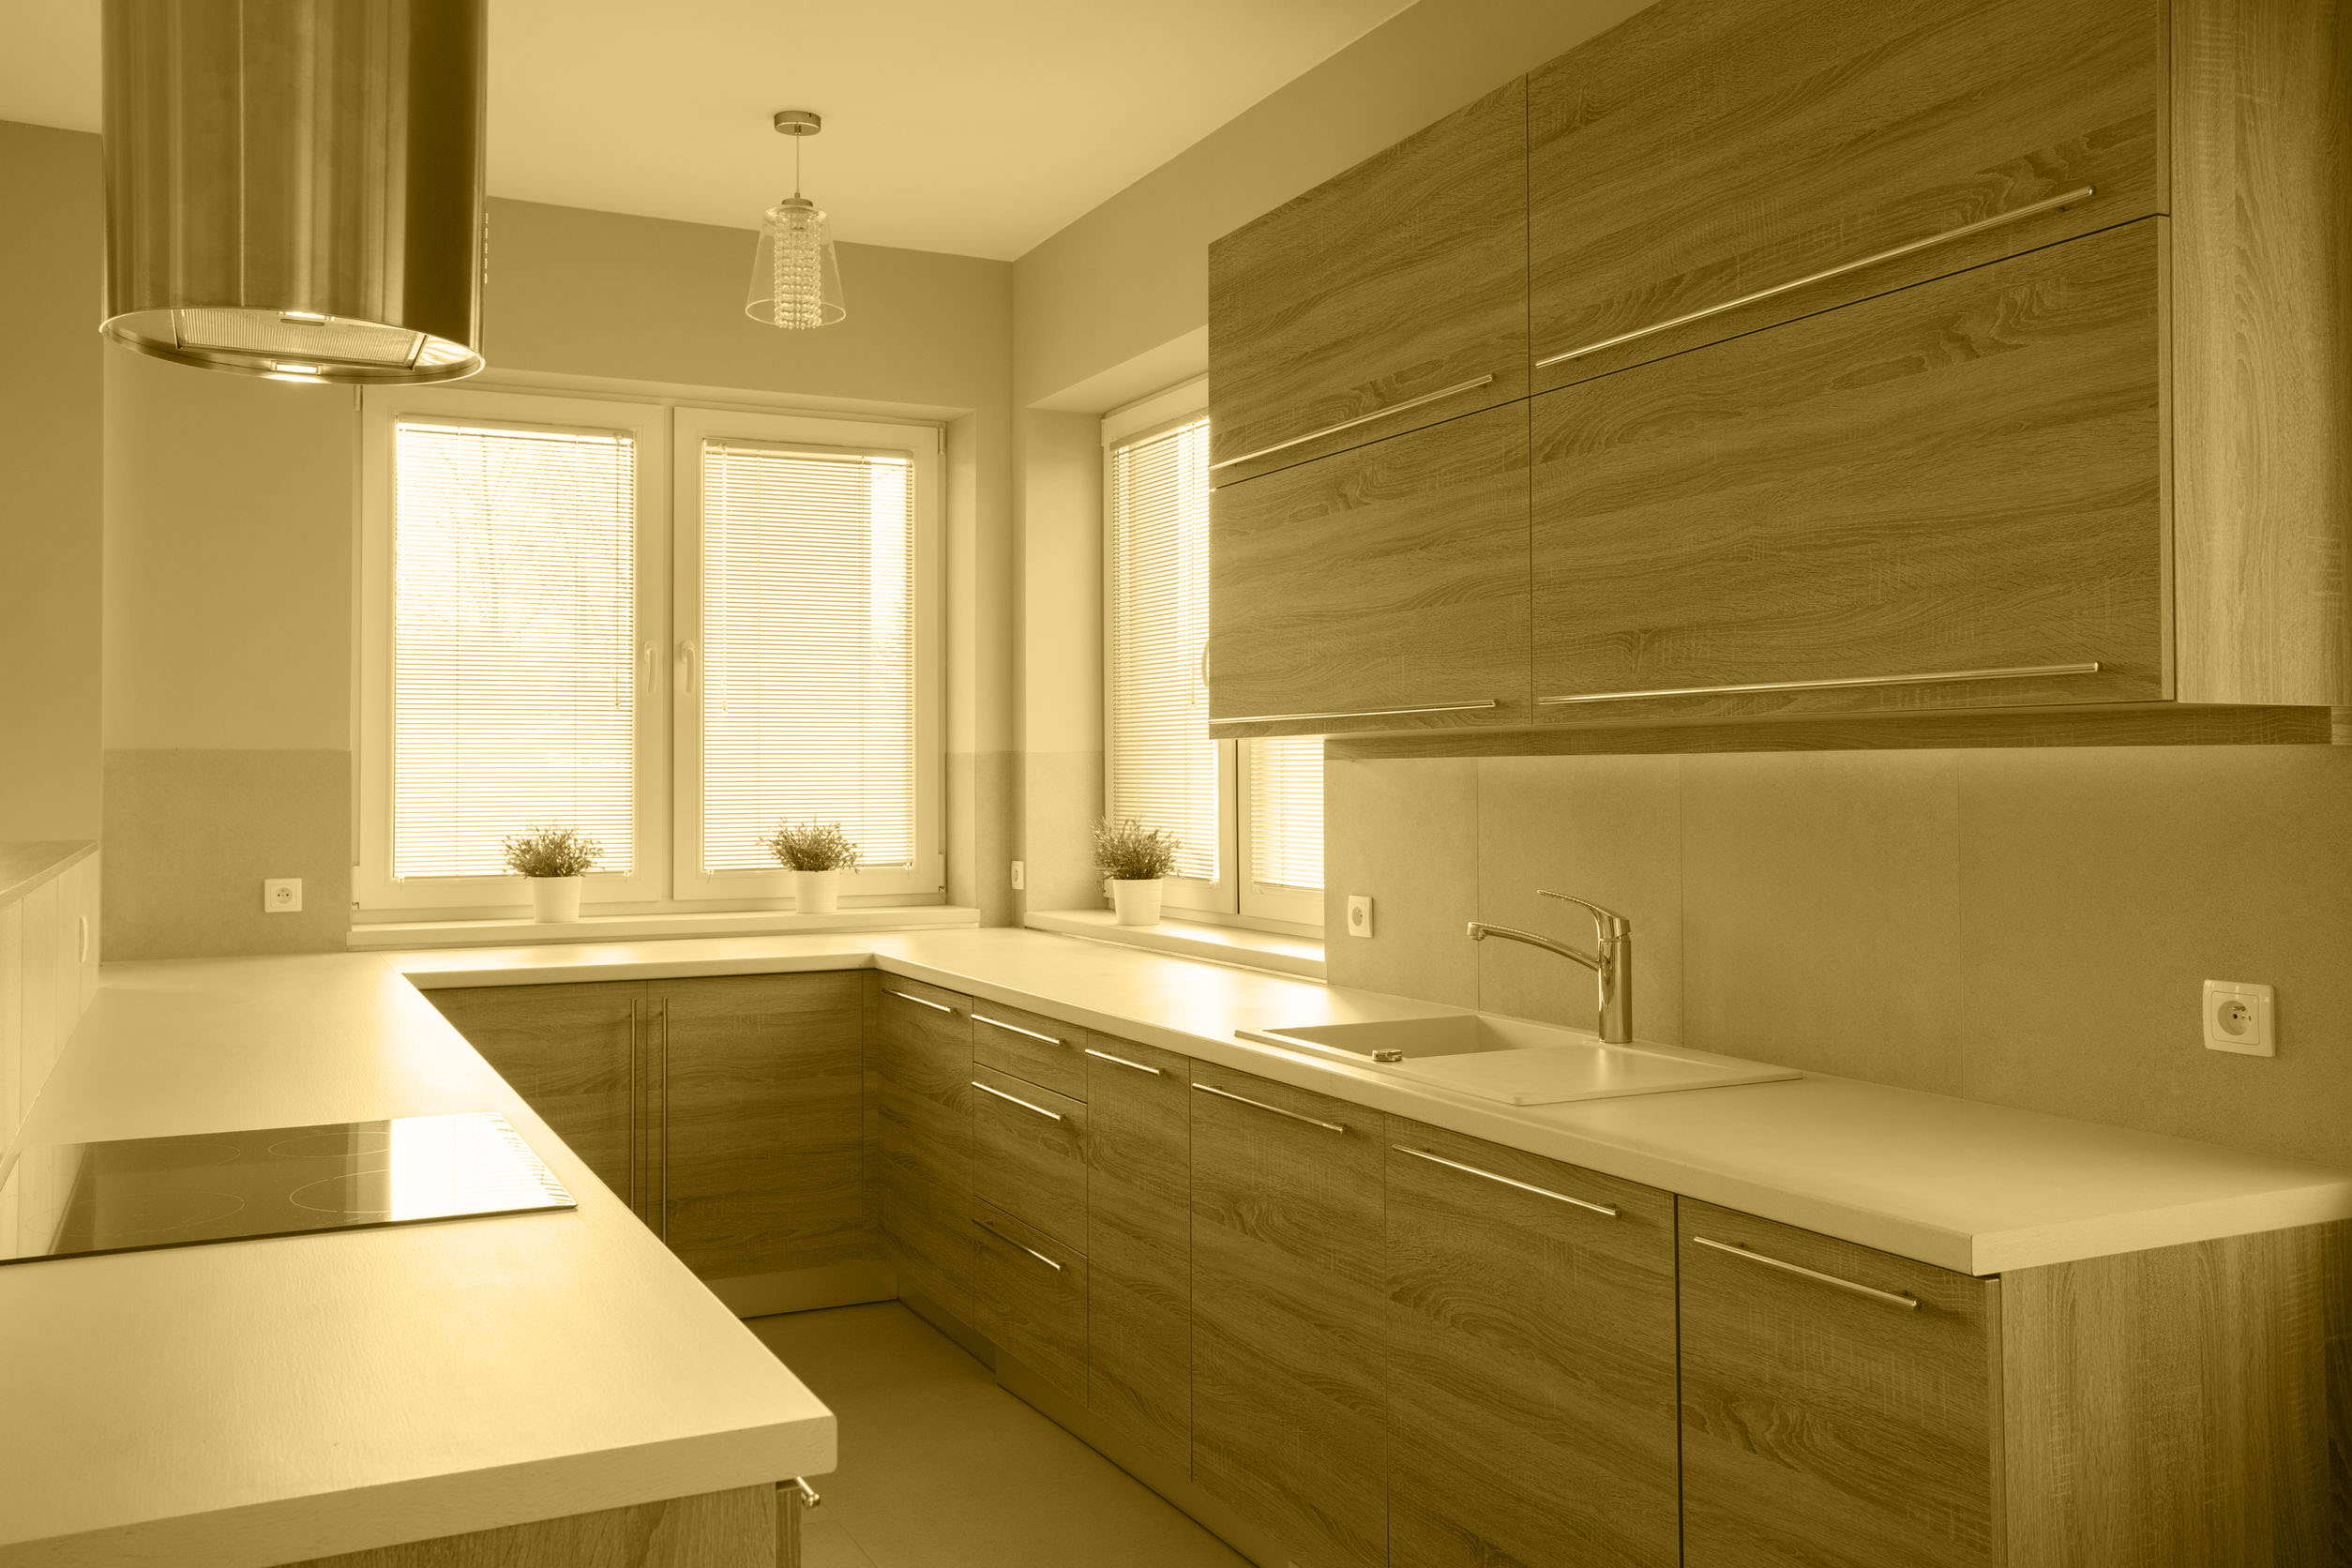 48766087 - bright wooden kitchen in beauty luxury house